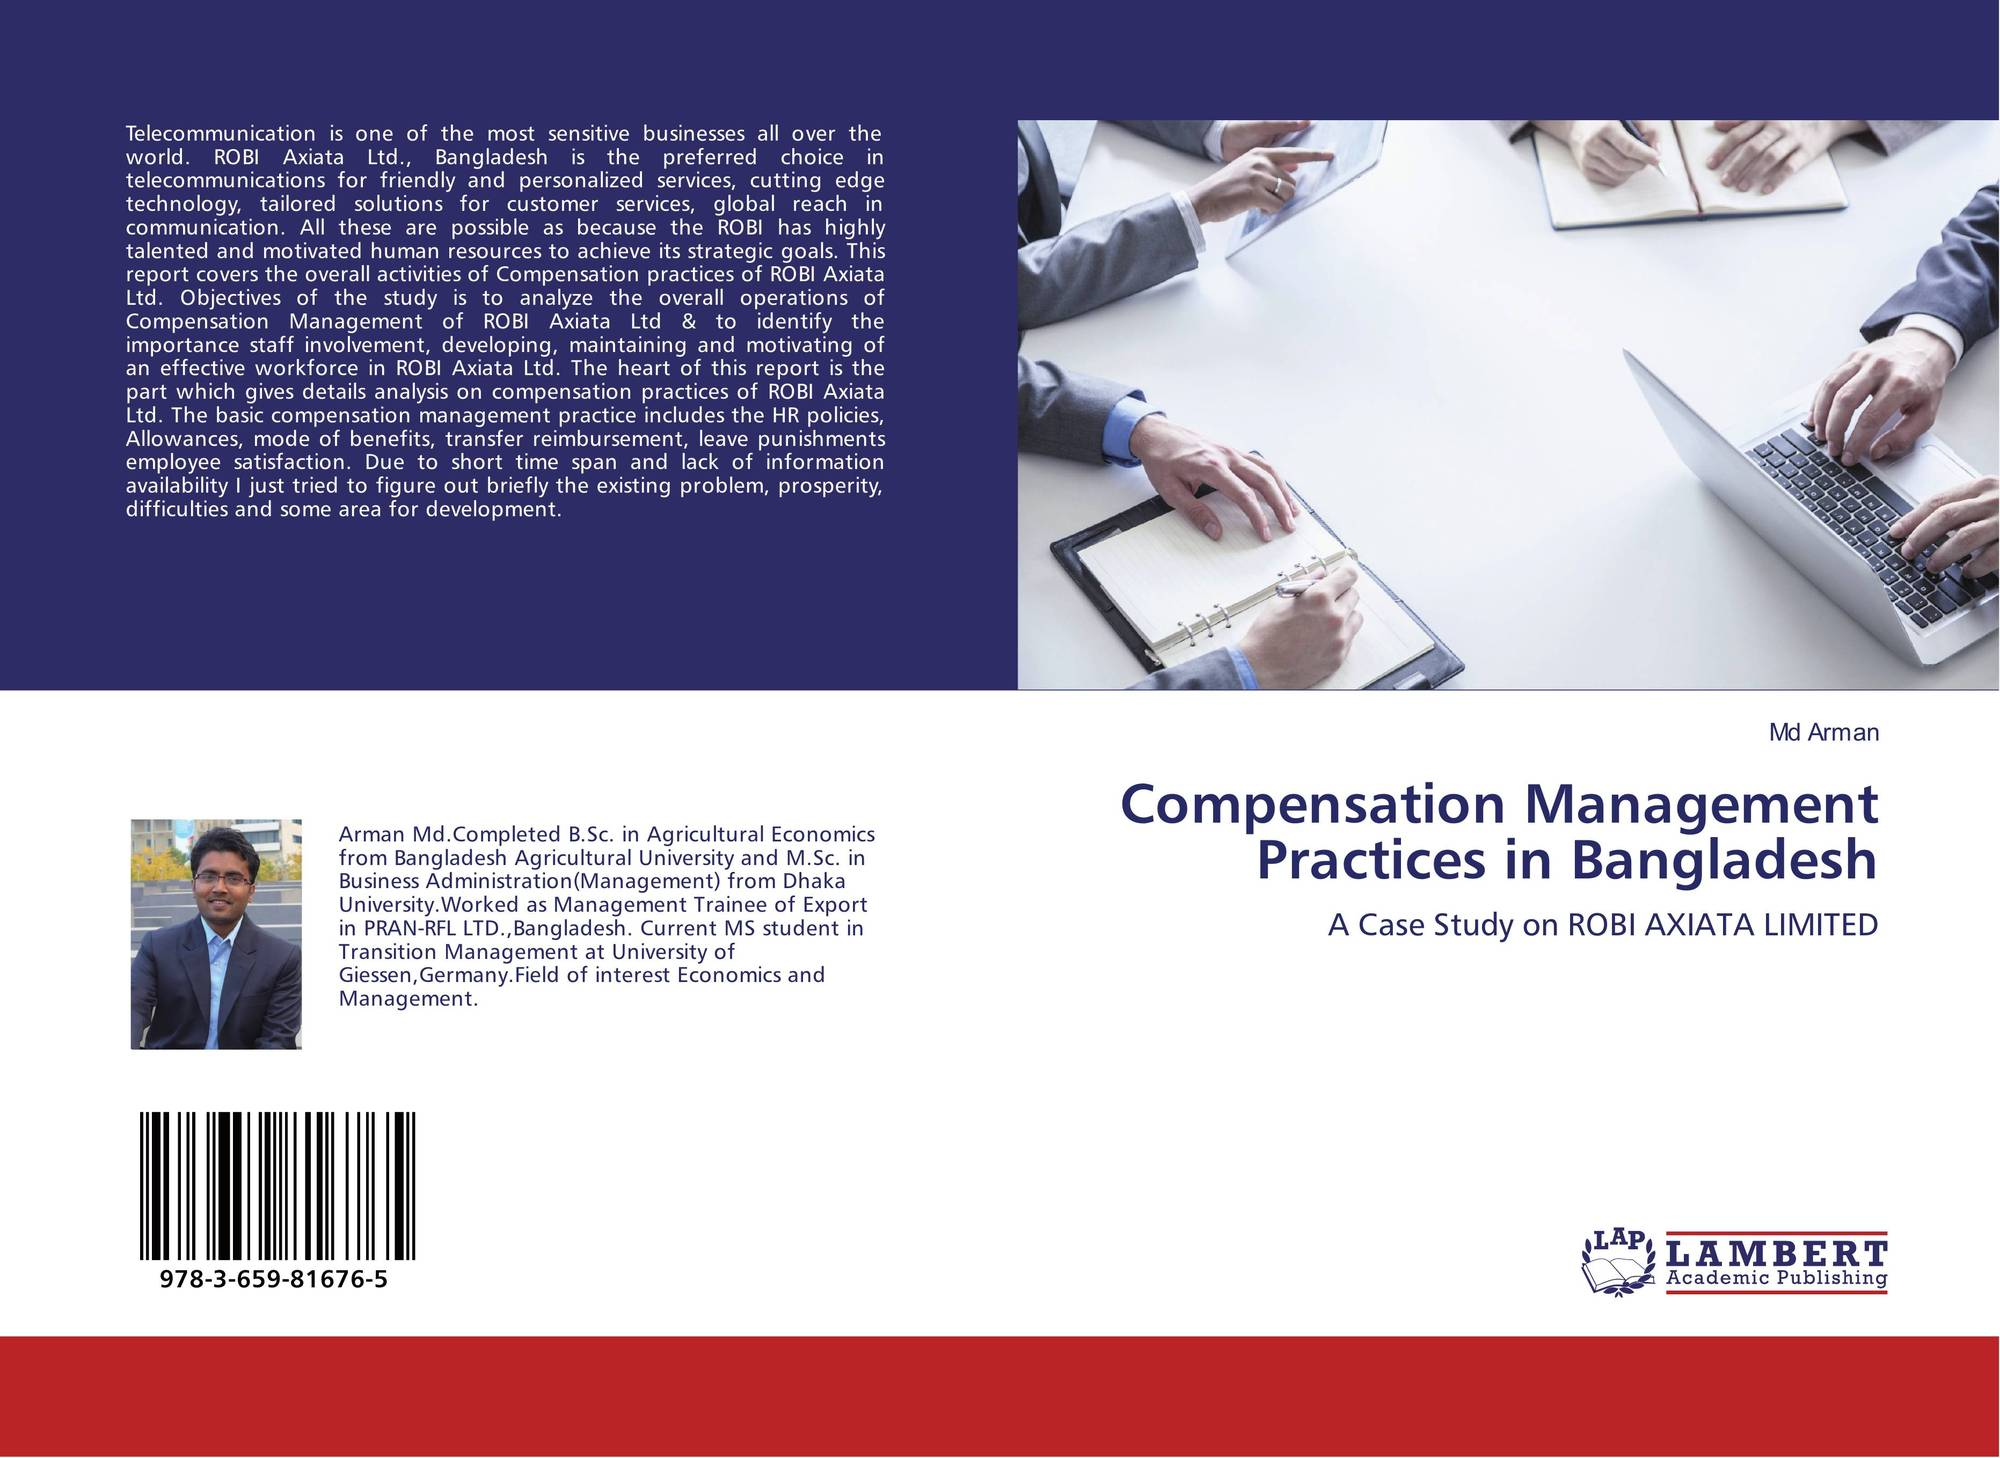 earnings management and corporate governance in bangladesh Corporate governance has become even more important since the collapse of major firms in the 1990s and the global financial crisis of 2007-2008, and the relationship between financial reporting and the capital markets is a big reason why the debate has continued over the unreliability of reported.